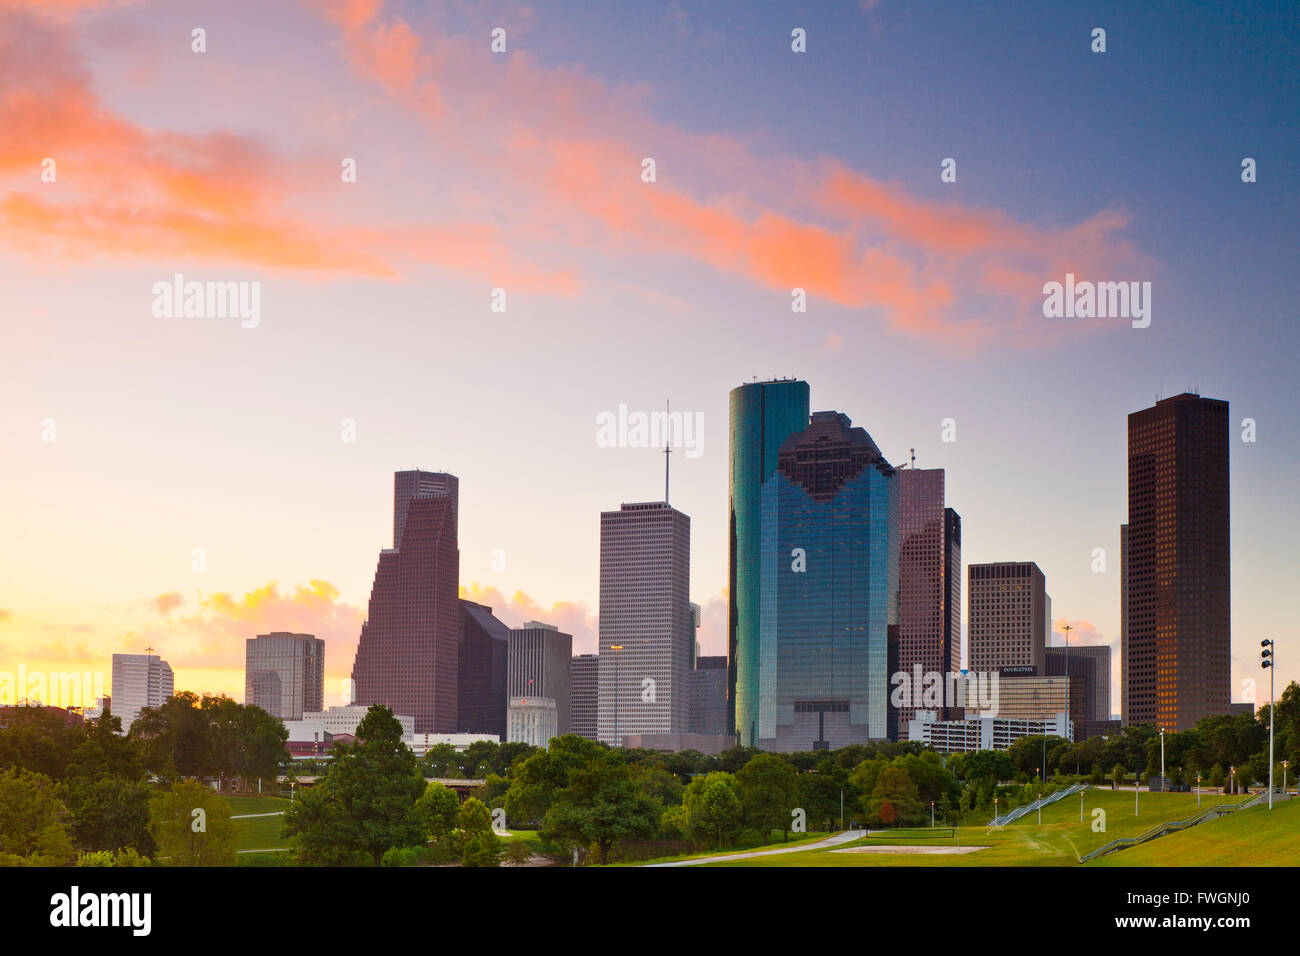 Houston skyline at dawn from Eleanor Tinsley Park, Texas, United States of America, North America - Stock Image